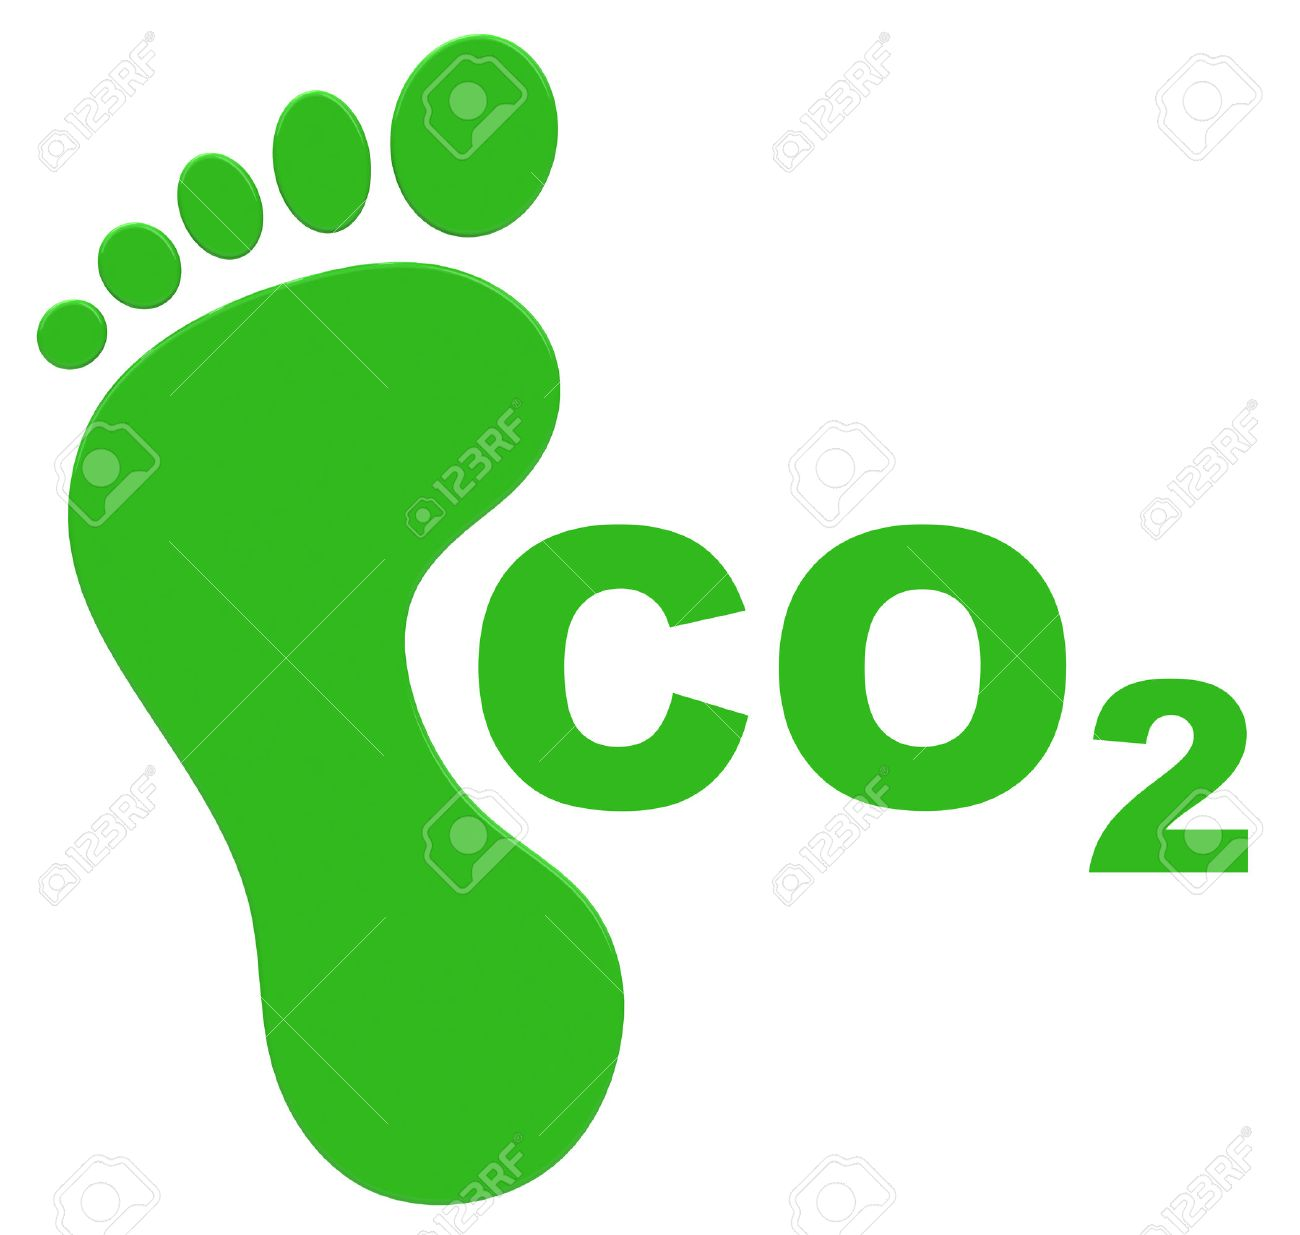 Ecological Footprint Images & Stock Pictures. Royalty Free ...